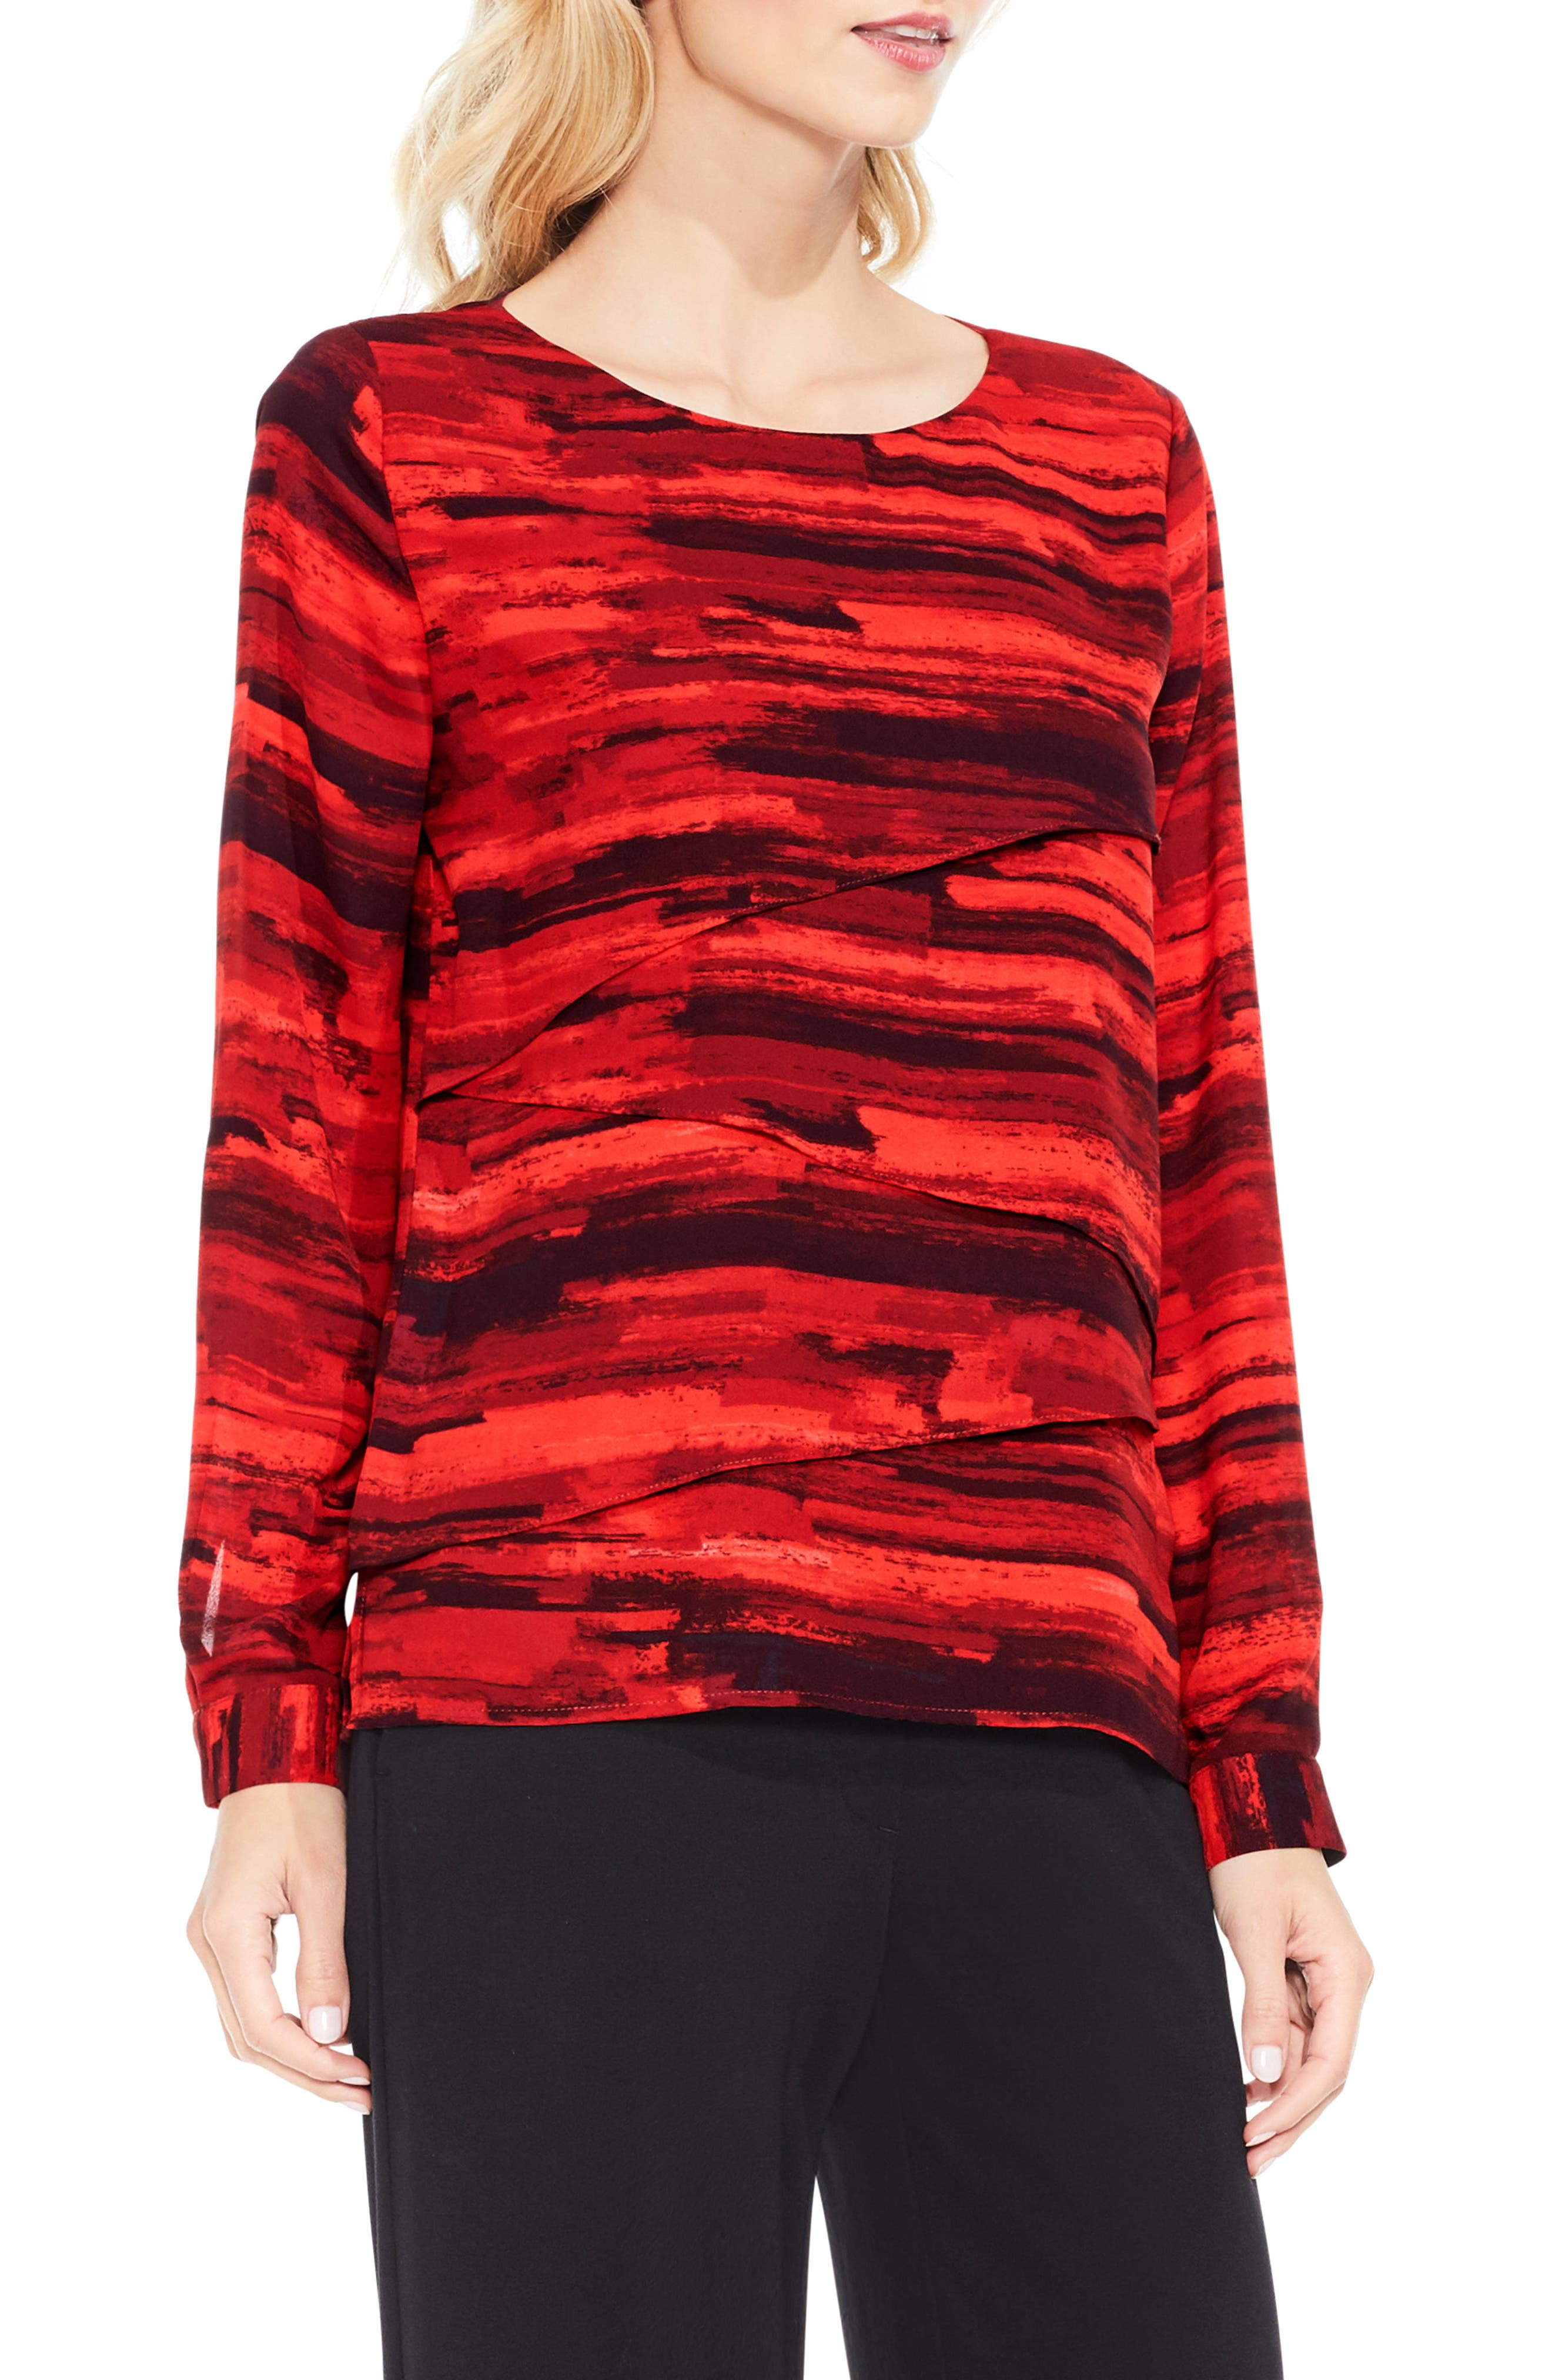 Vince Camuto Muses Print Tiered Blouse